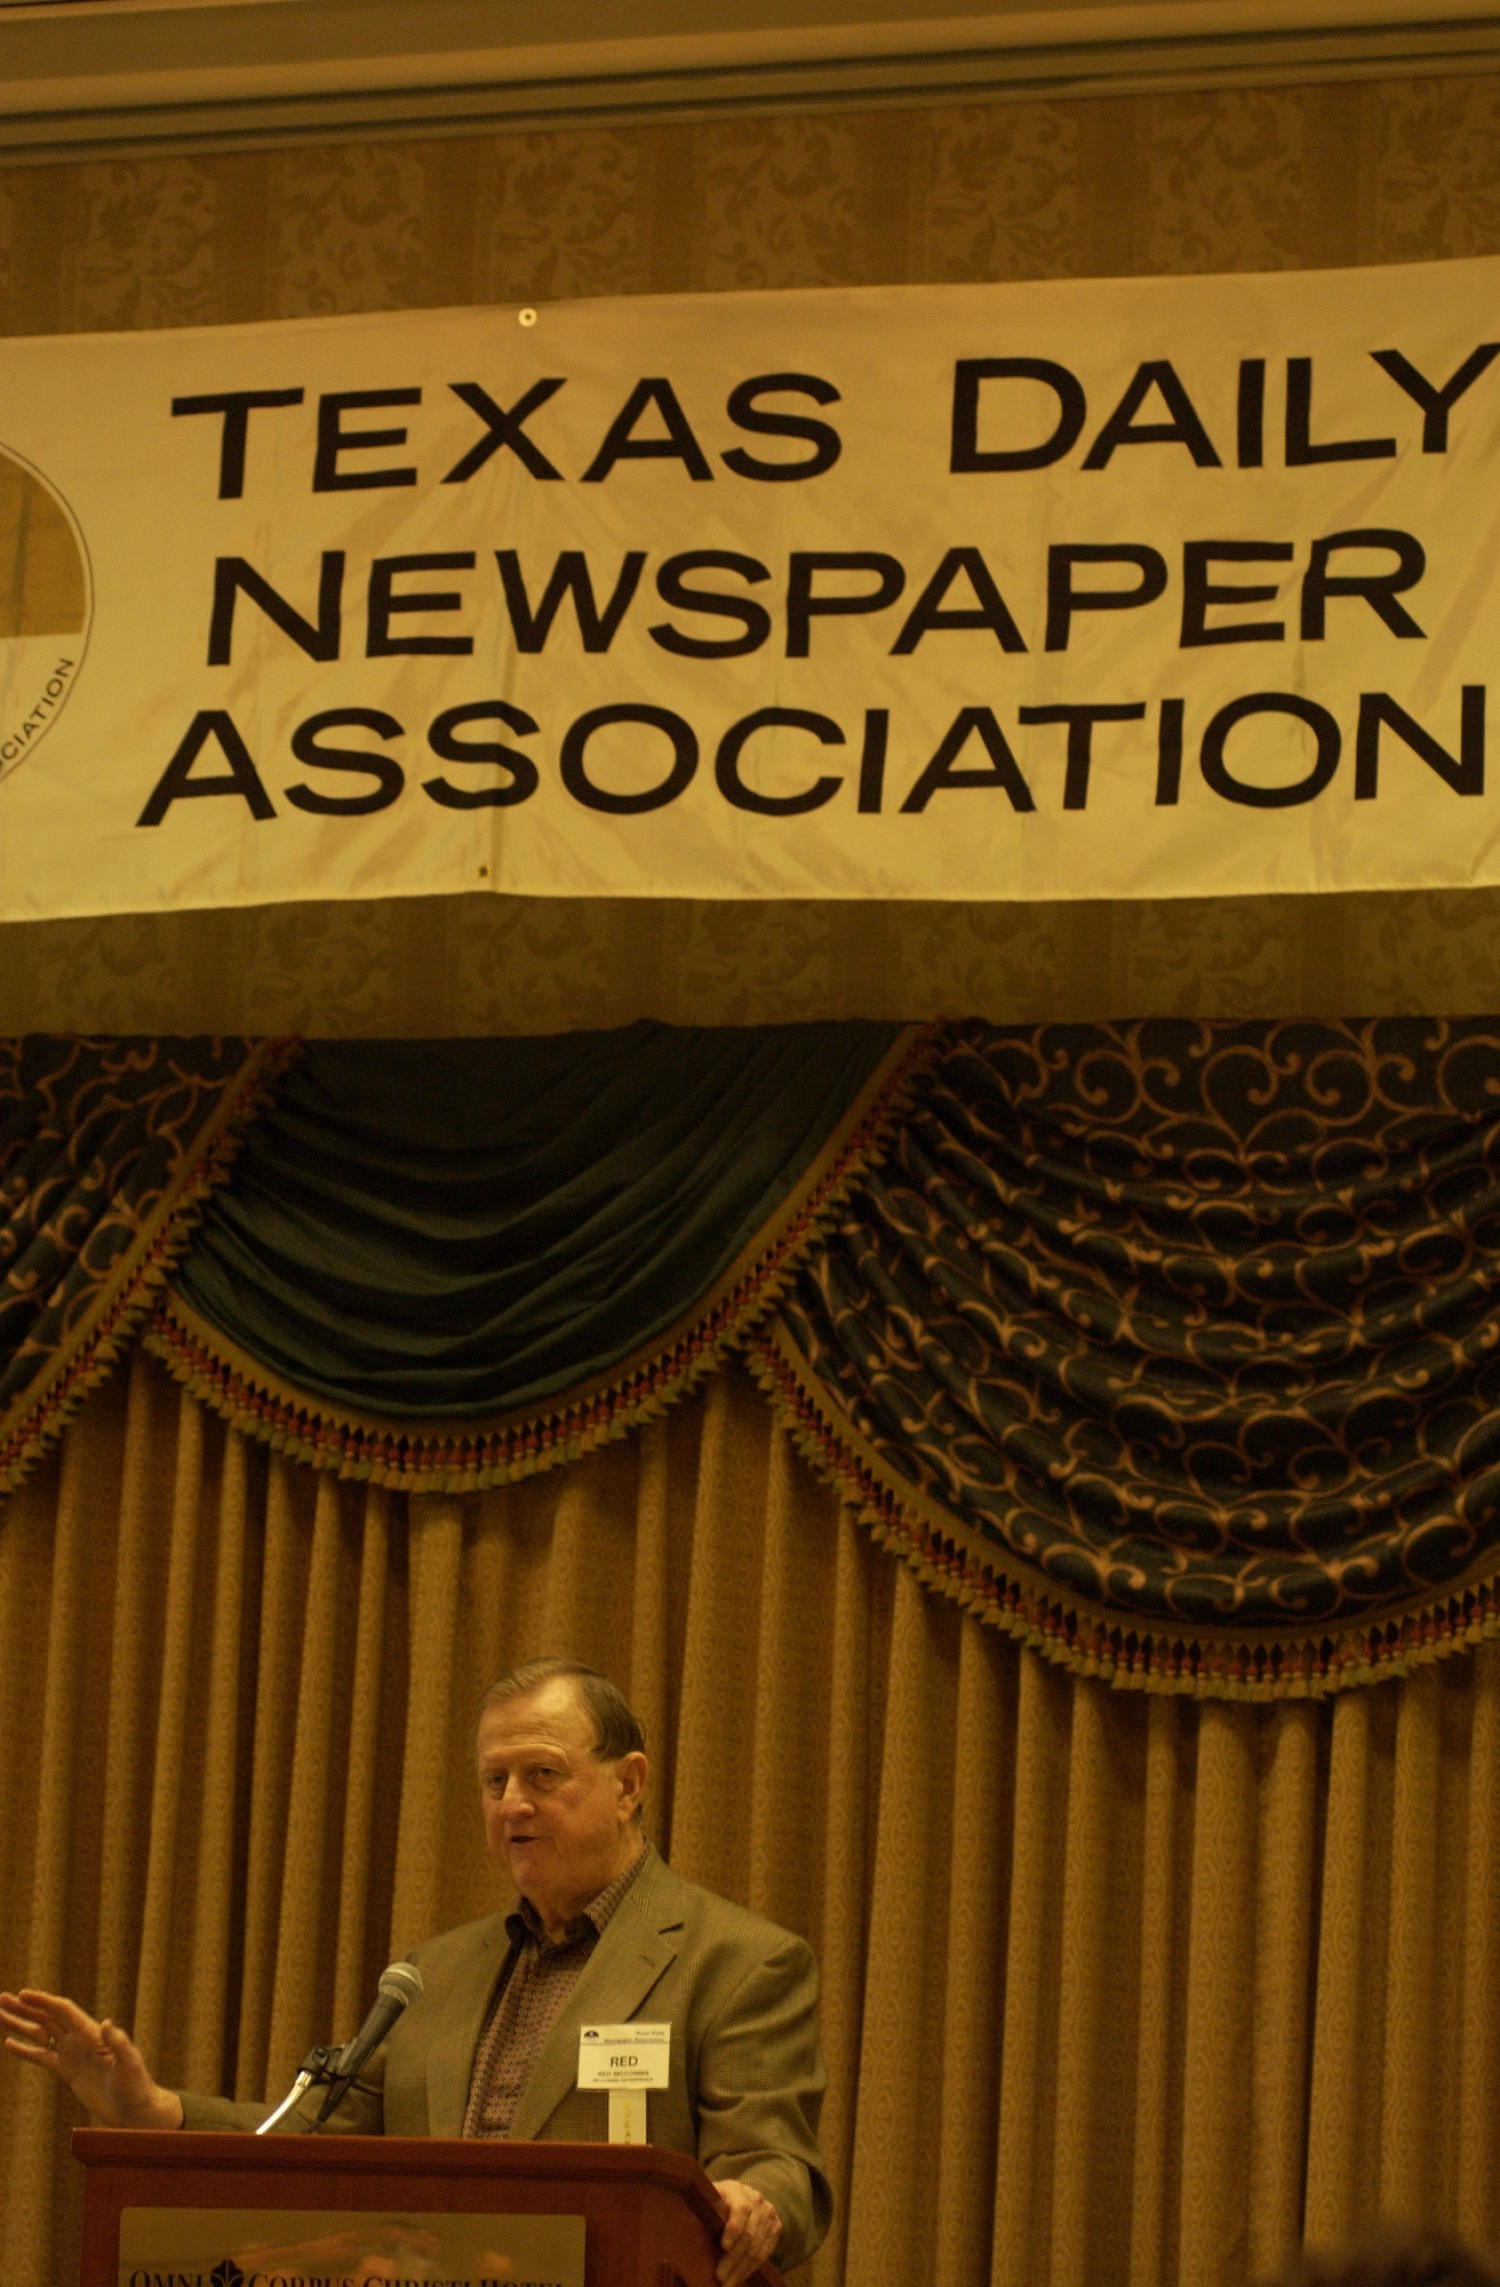 """[Billy Joe """"Red"""" McCombs guest speaking at TDNA conference], Photograph of Billy Joe """"Red"""" McCombs of McCombs Enterprises, guest speaking at the 2004 Texas Daily News Association (TDNA) annual conference held in Corpus Christi. McCombs is seen standing at a podium and speaking into the microphone as he addresses the guests of the conference.,"""